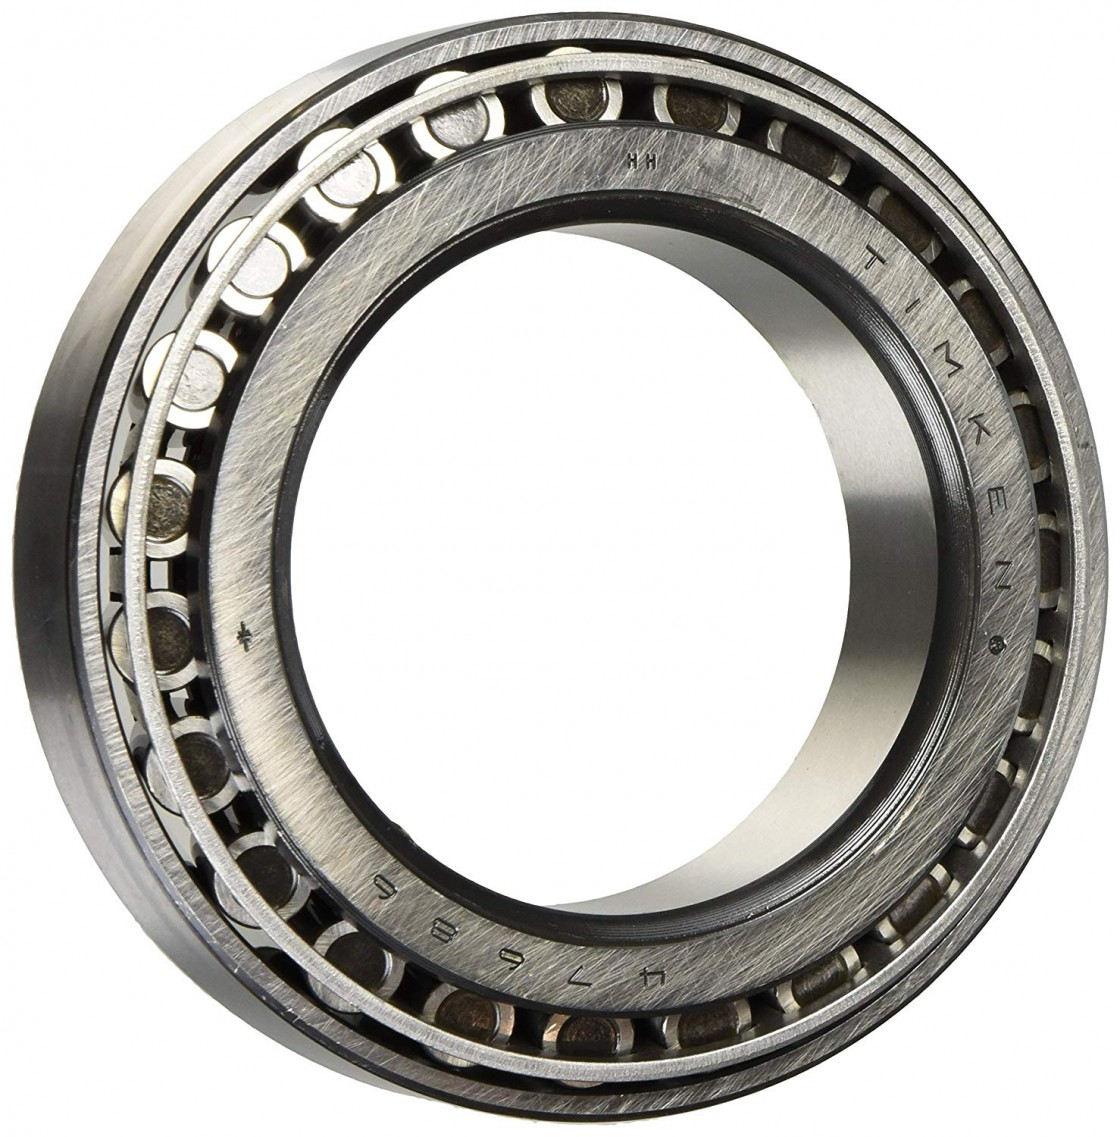 6203 Deep Groove Ball Bearing Used for Fan Equipment